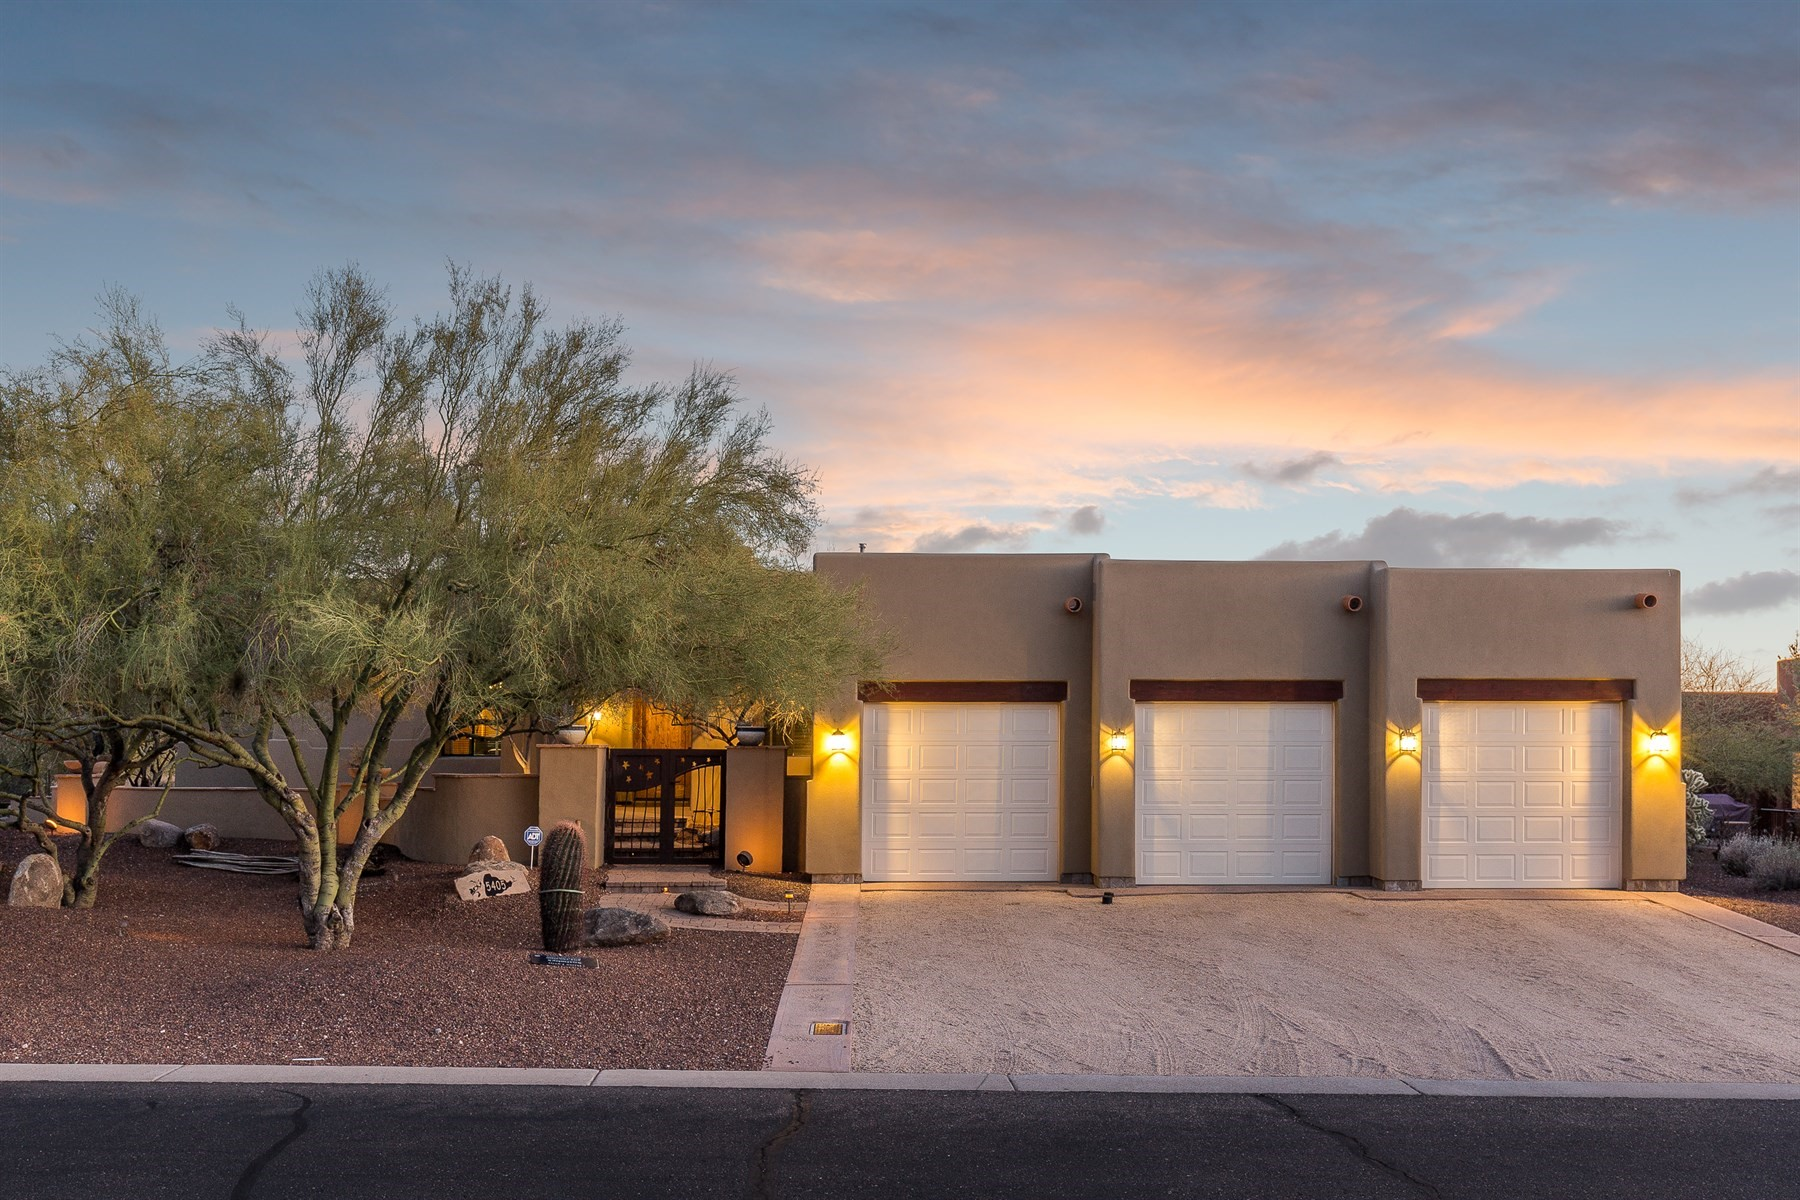 Single Family Home for Sale at Casas Del Cielo 5405 E Desert Forest Trl, Cave Creek, Arizona, 85331 United States